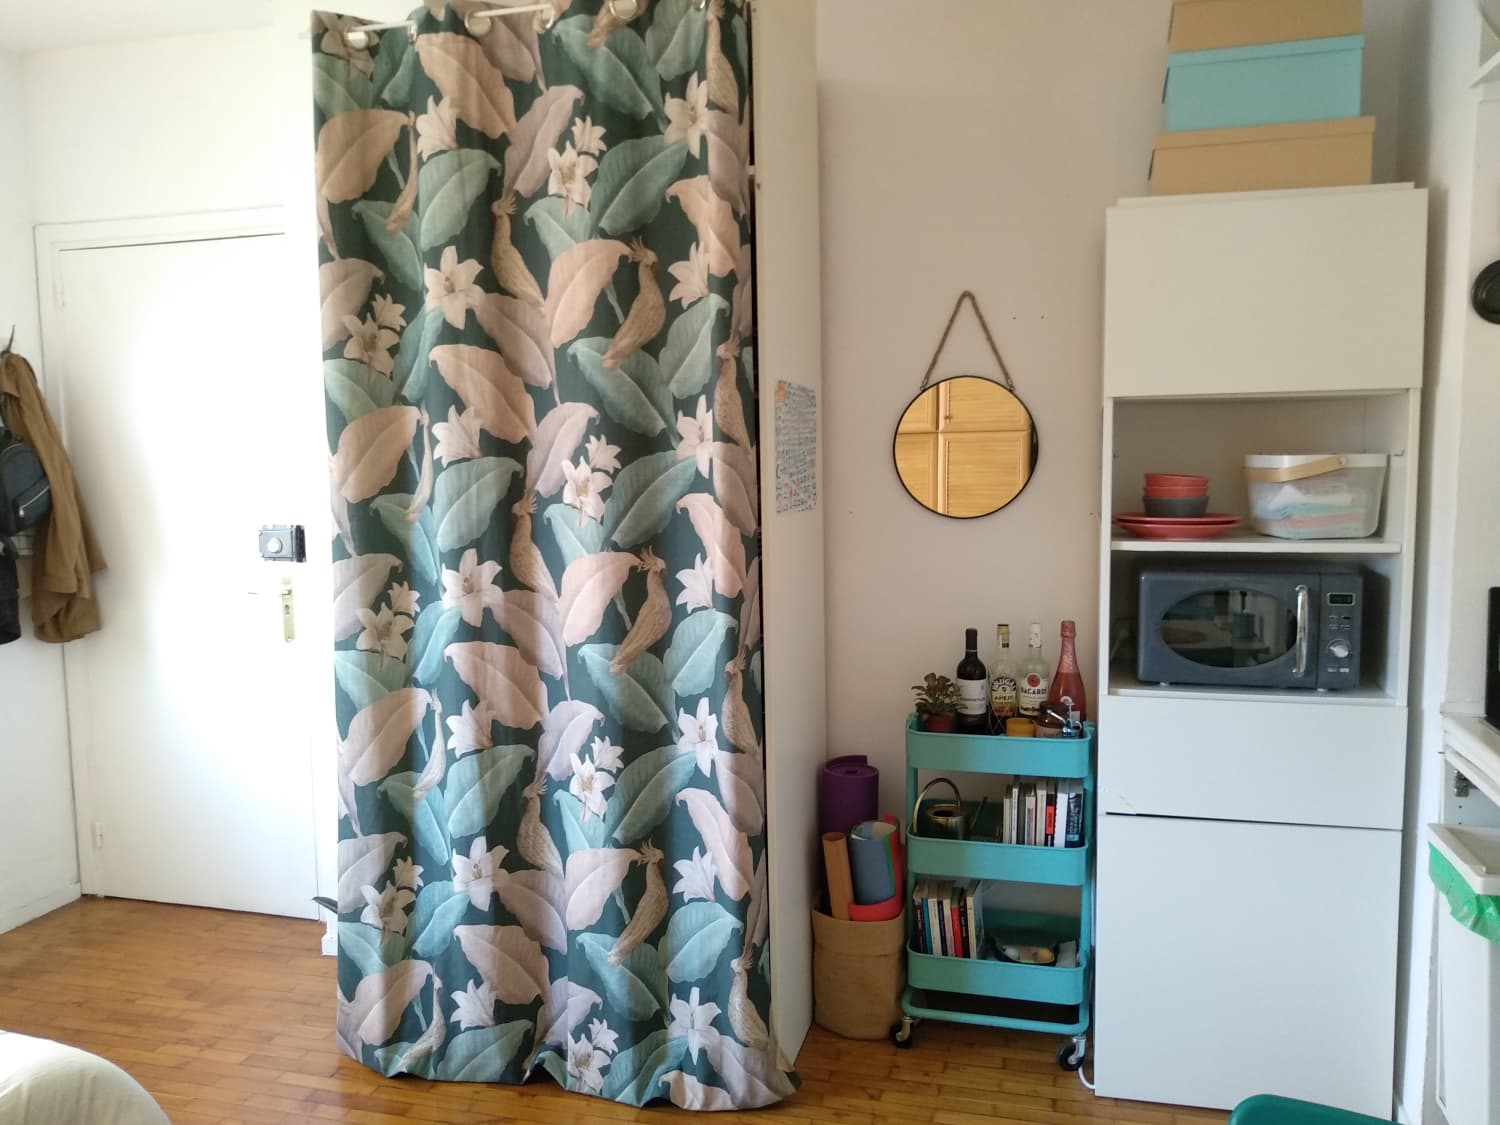 A Teeny 215-Square-Foot Spanish Studio Is a Cozy, Small, Sweet Home